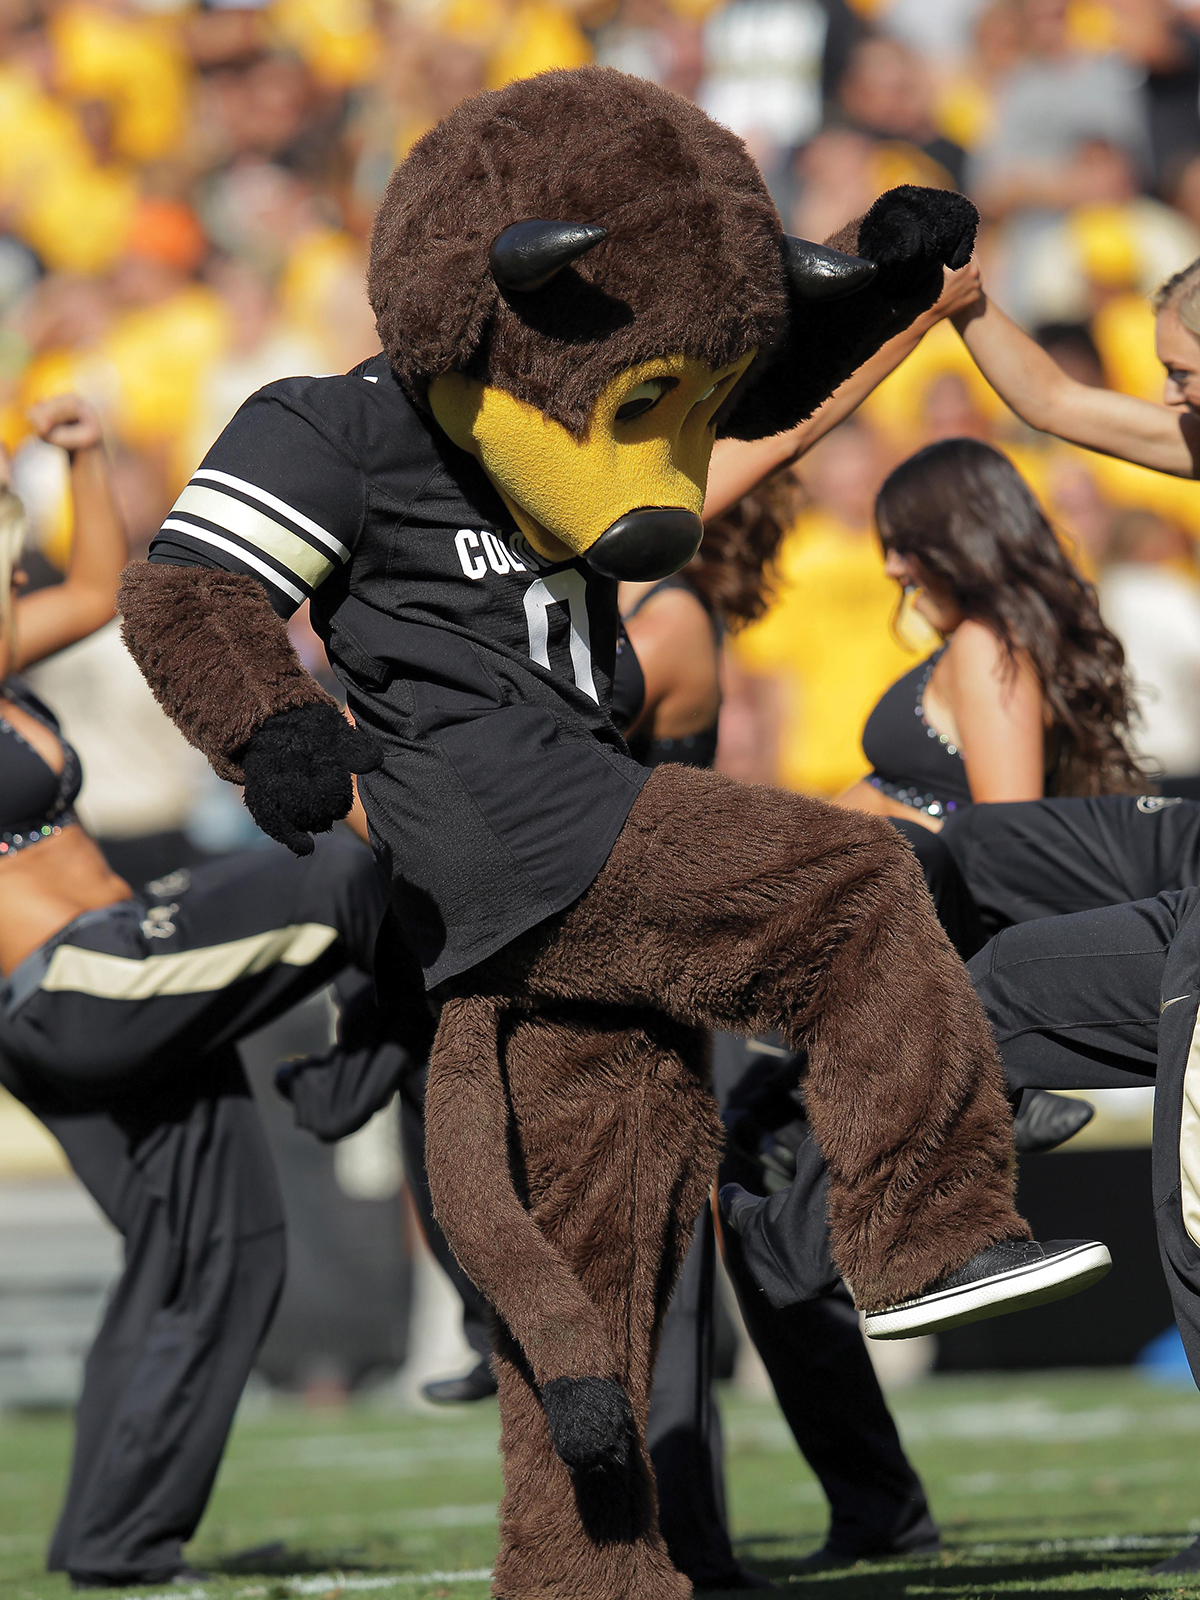 Colorado Boulder's Chip the Buffalo